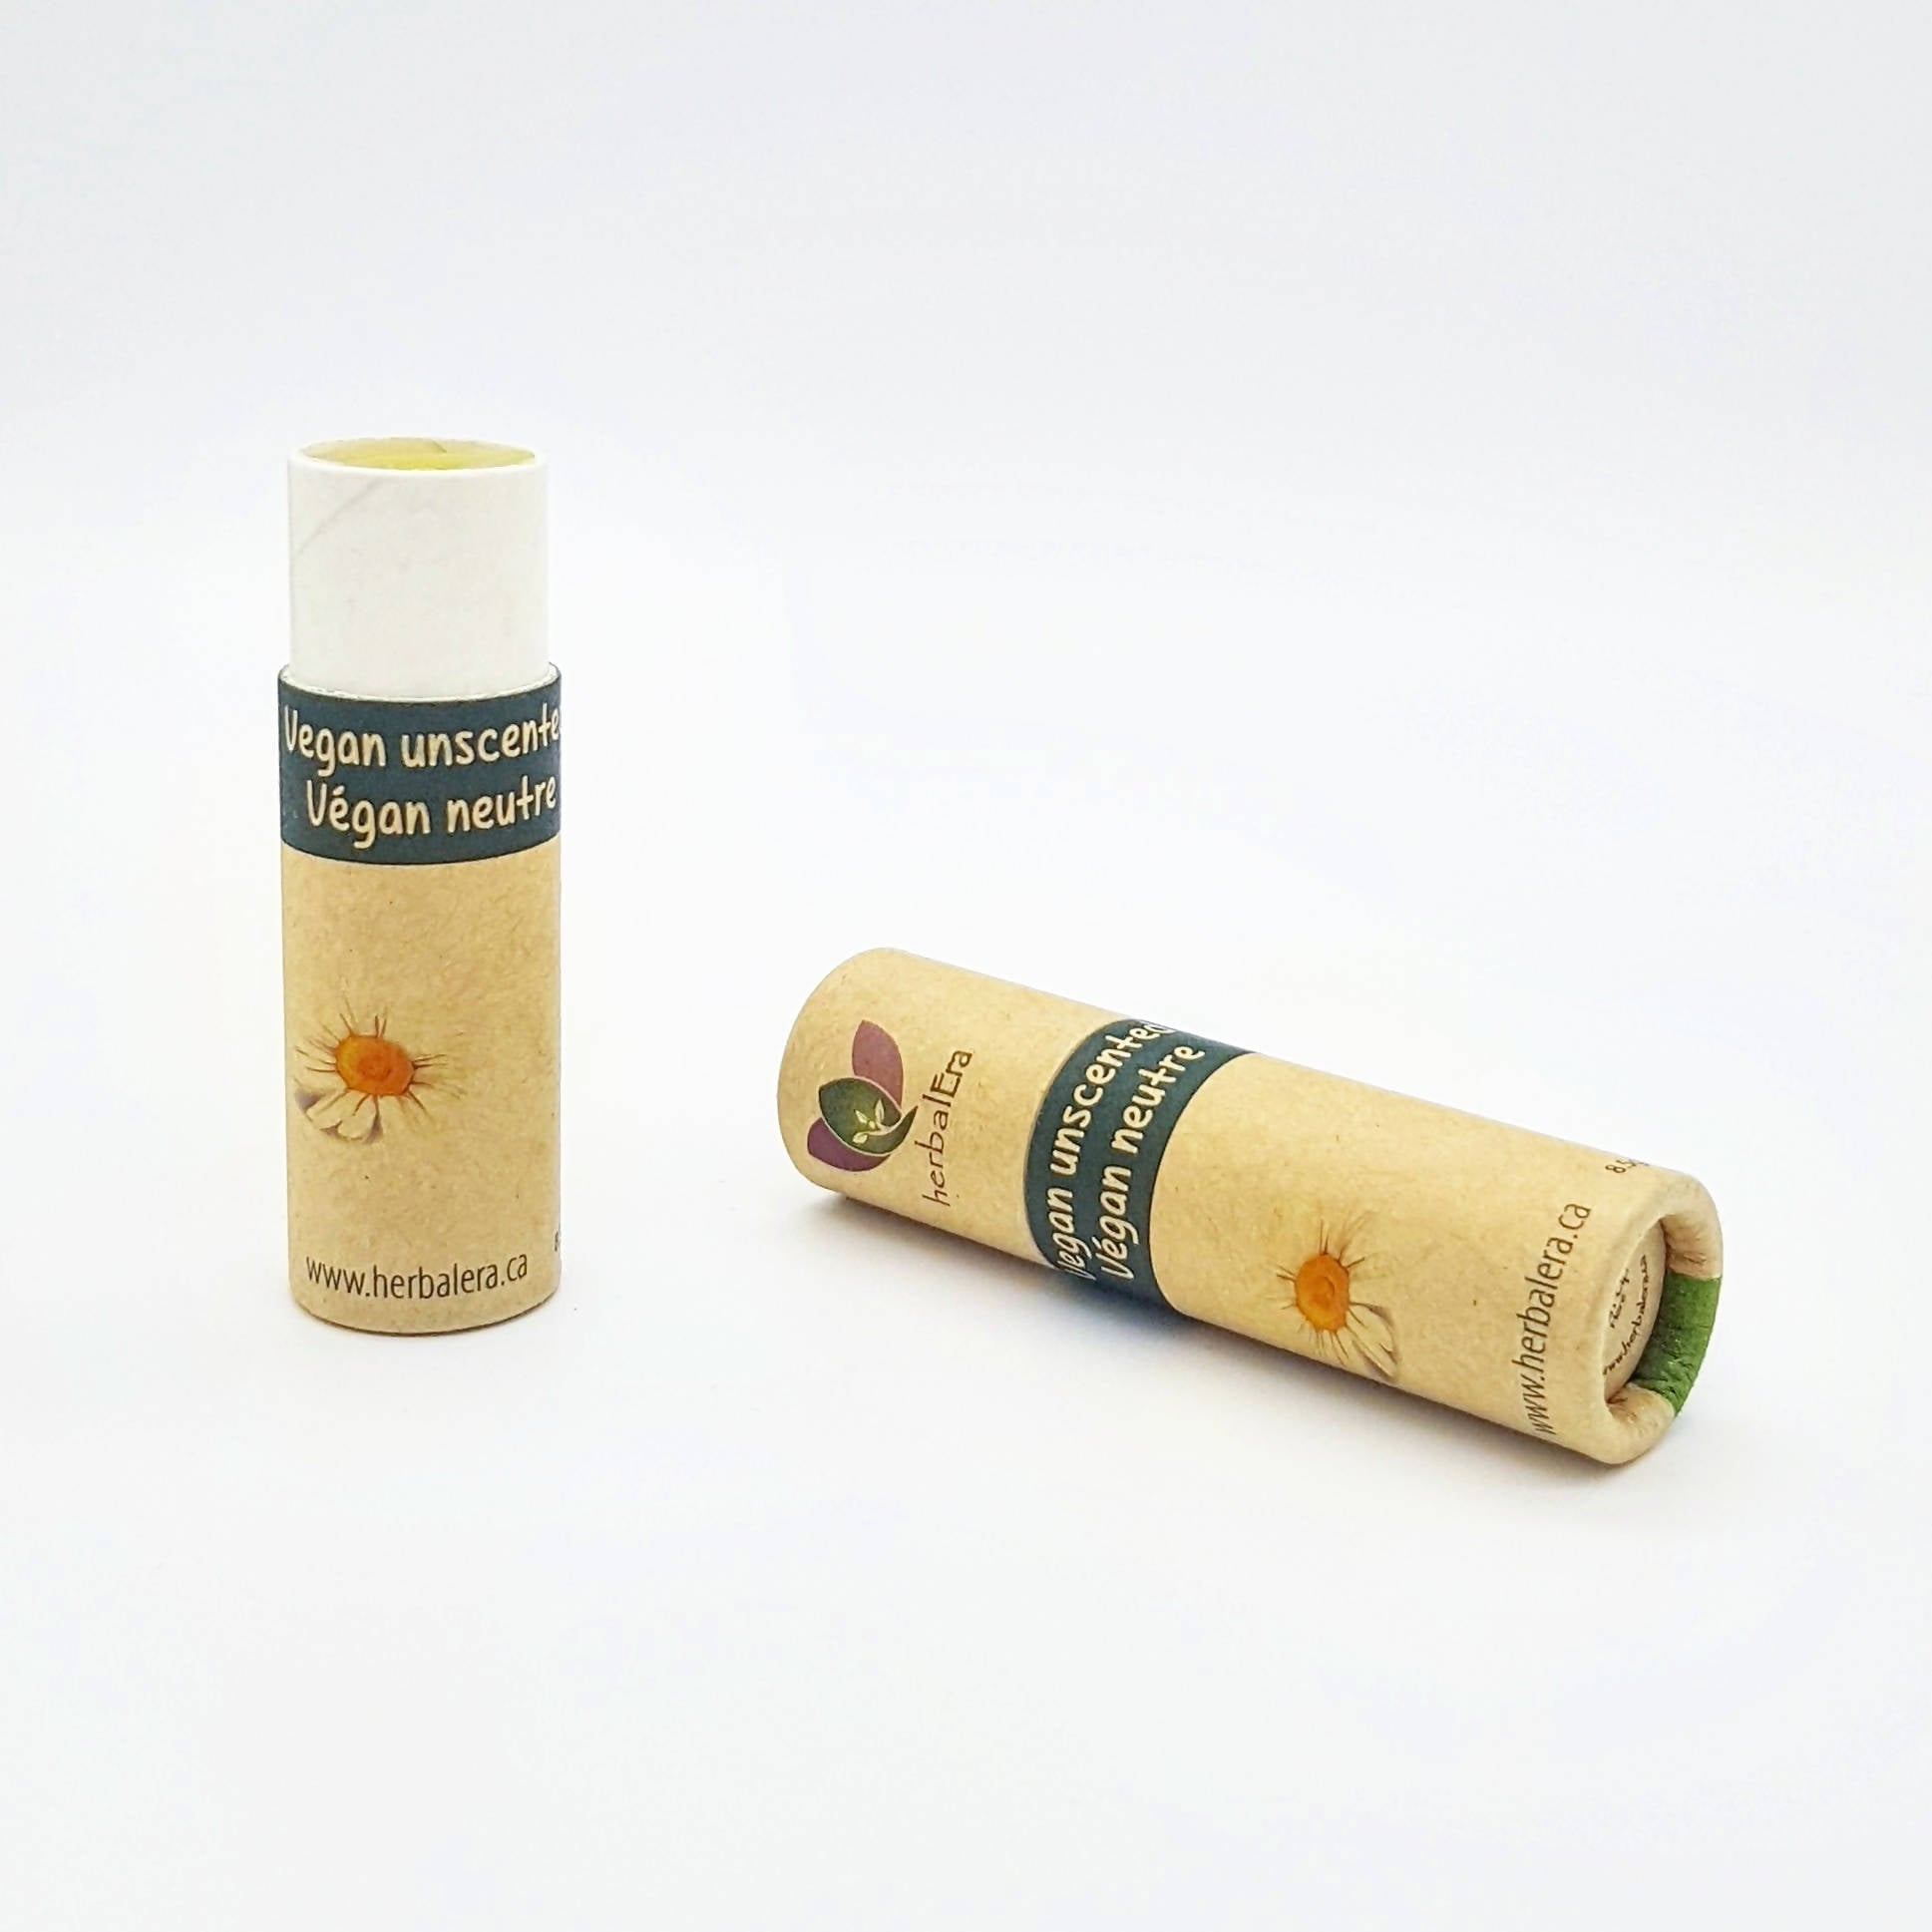 Vegan unscented lip balm 8,5g (0,3oz)